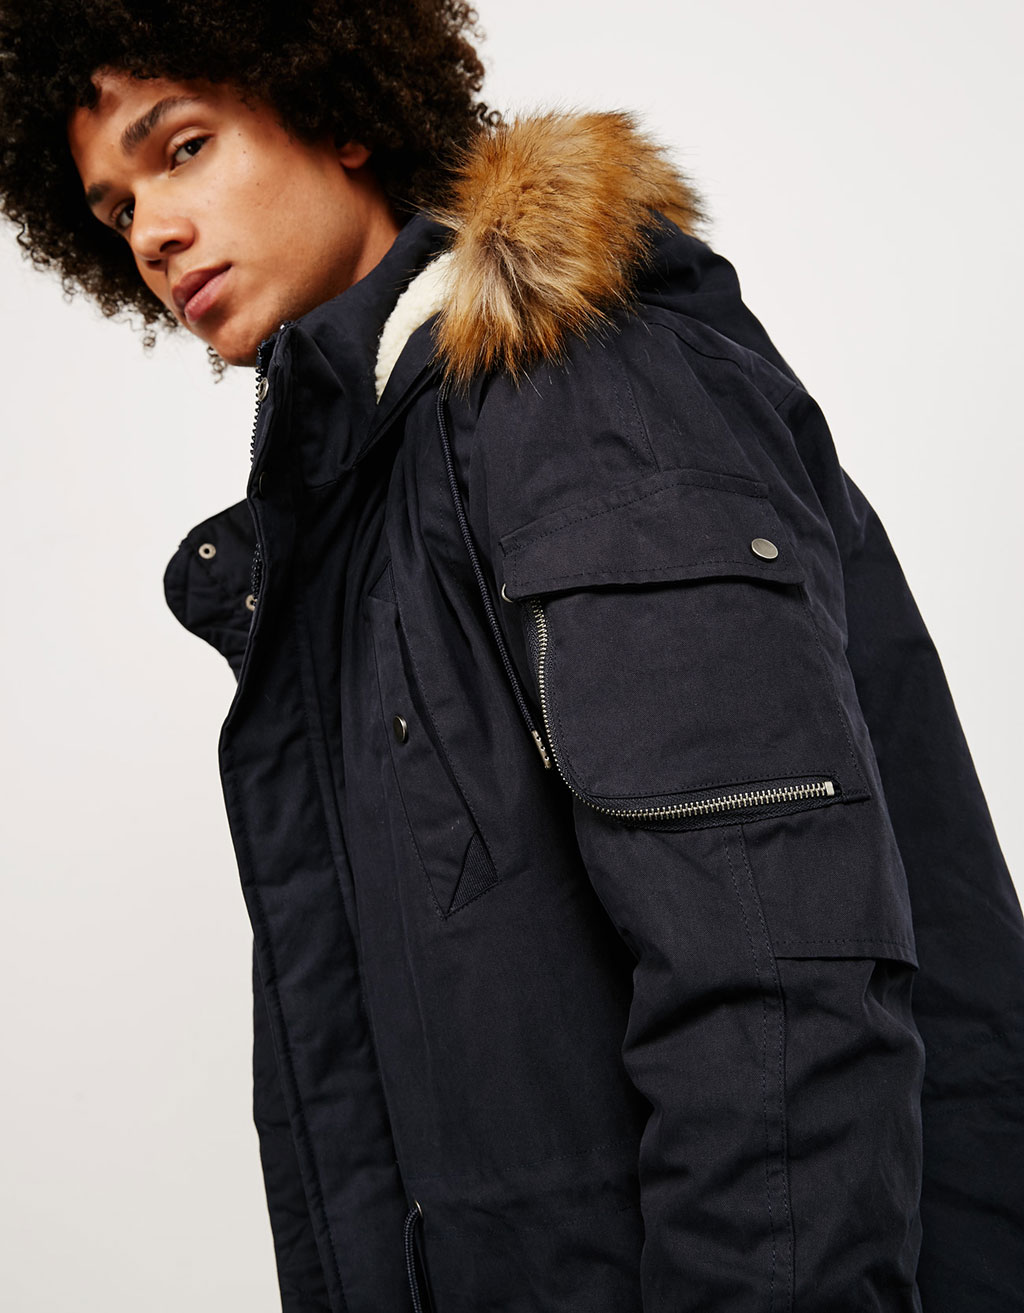 Removable fur Korean style parka